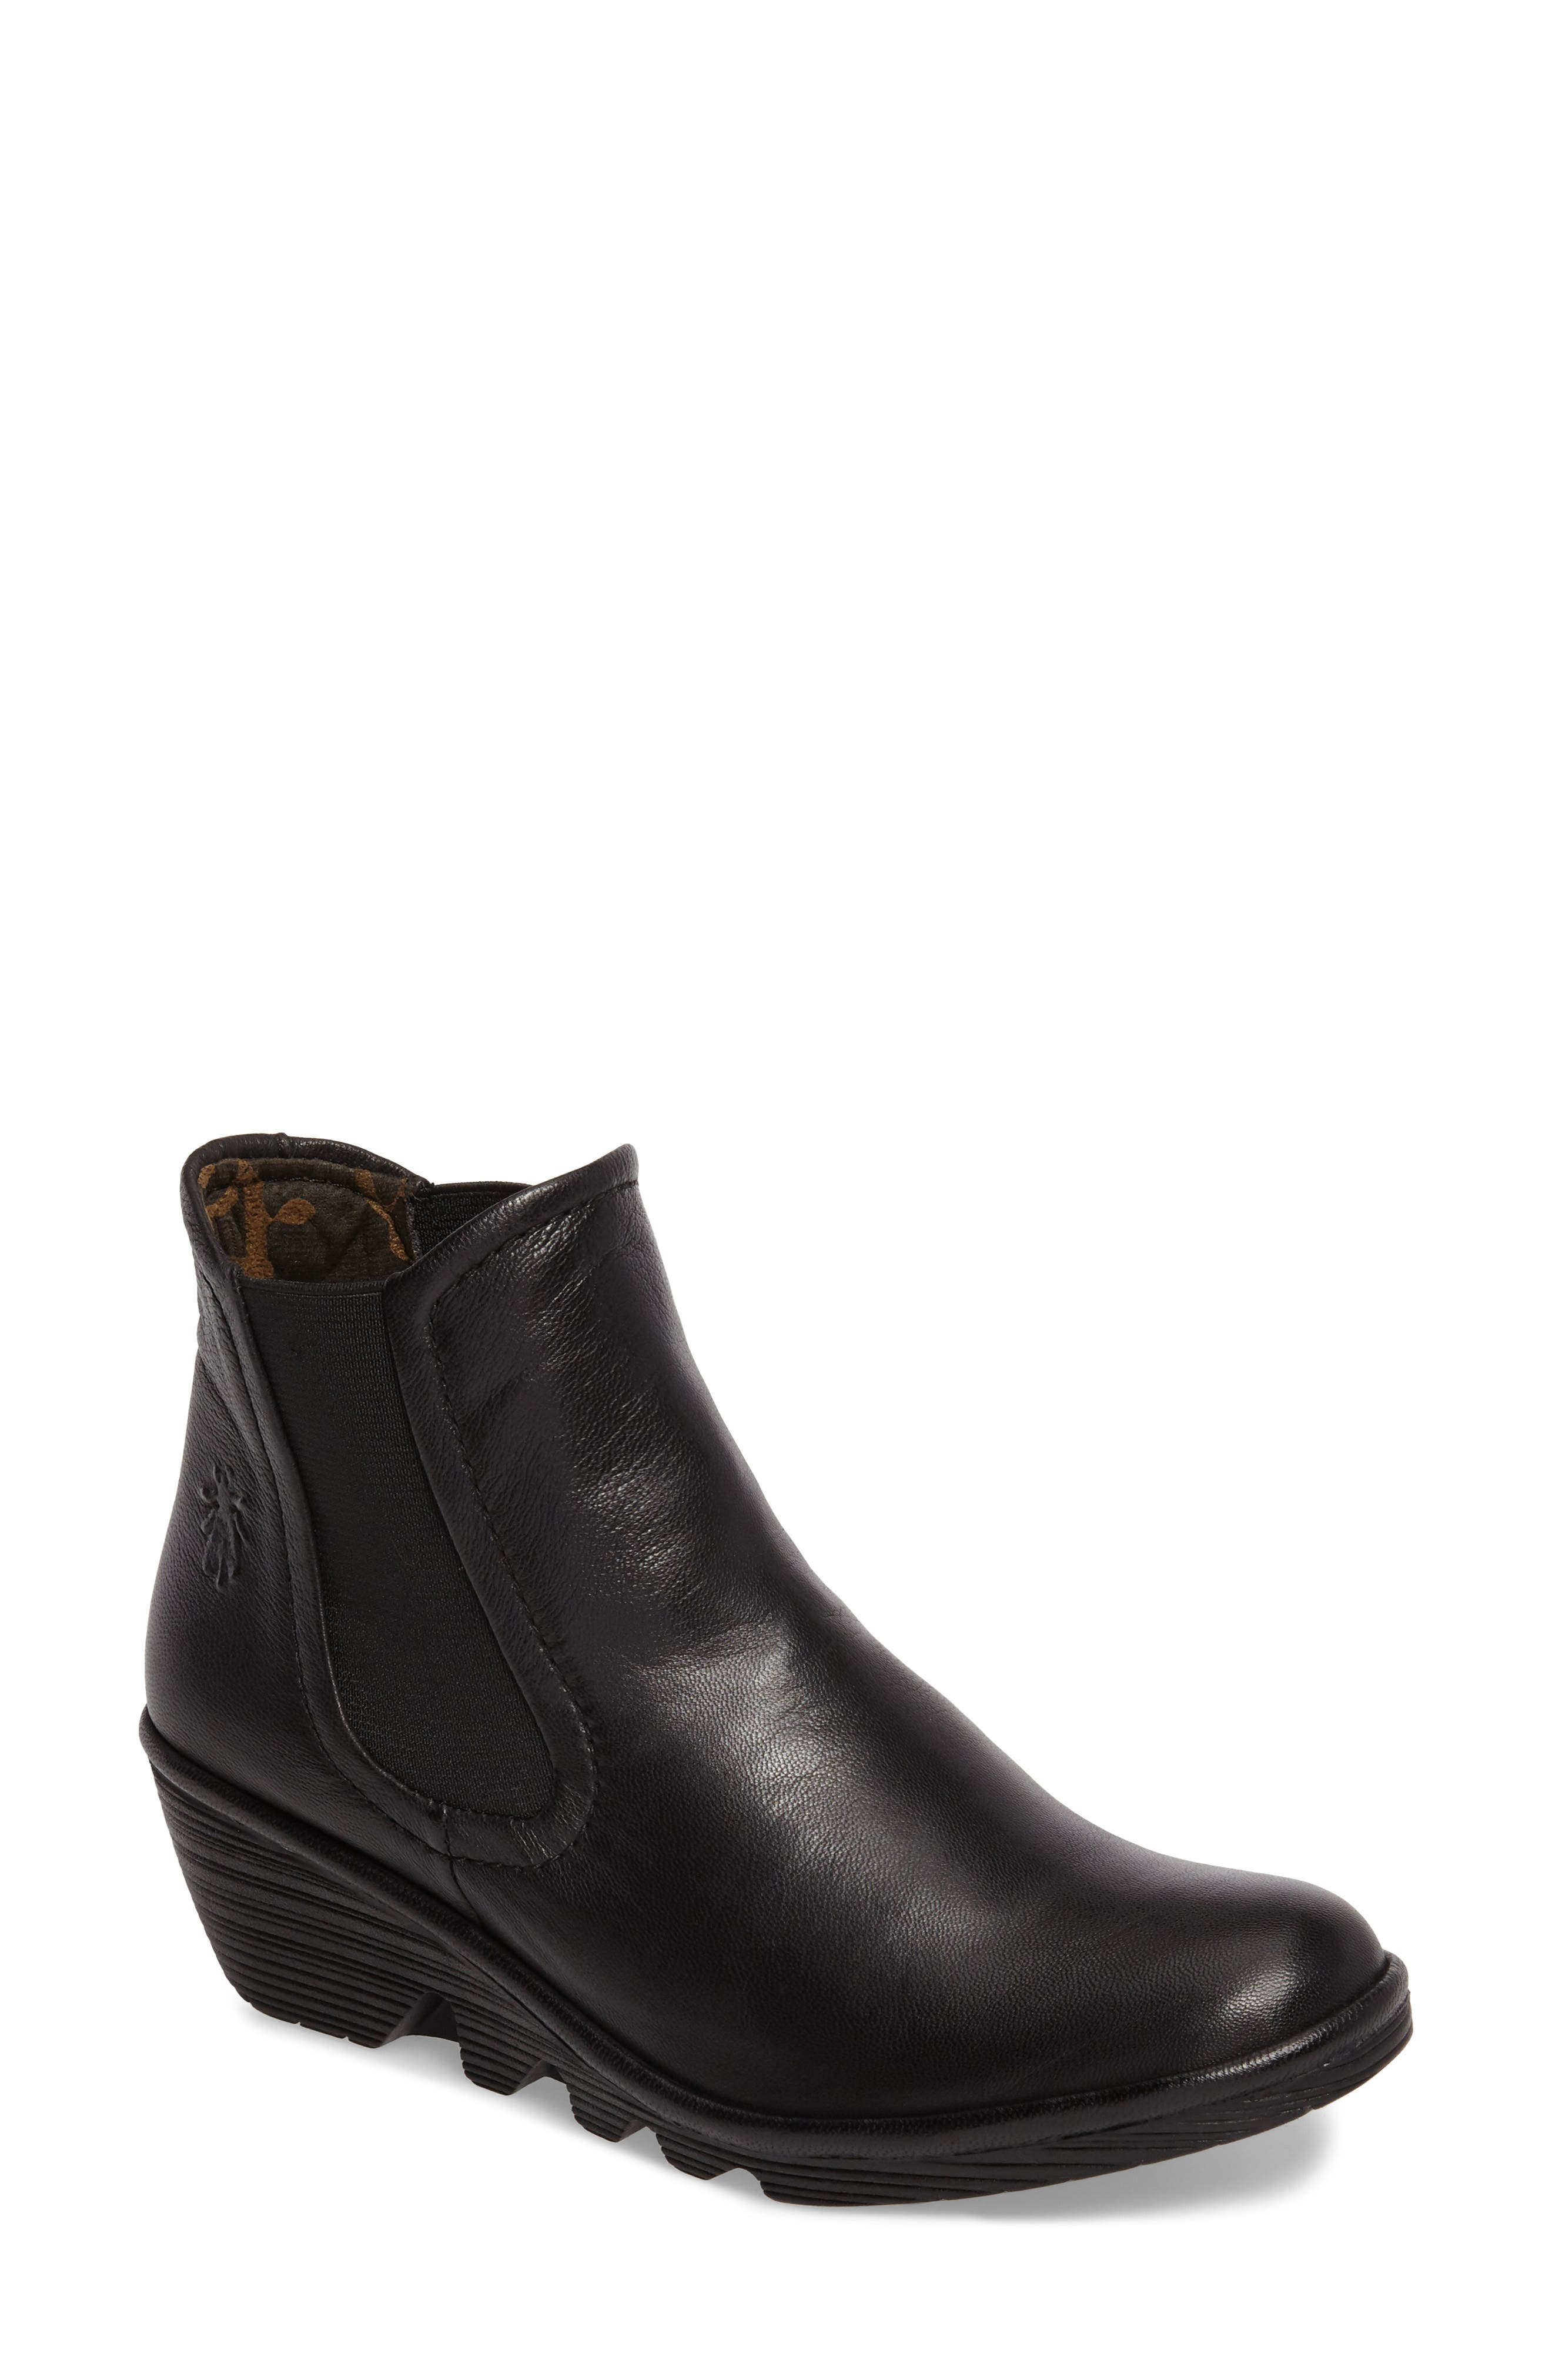 'Phil' Chelsea Boot,                             Main thumbnail 1, color,